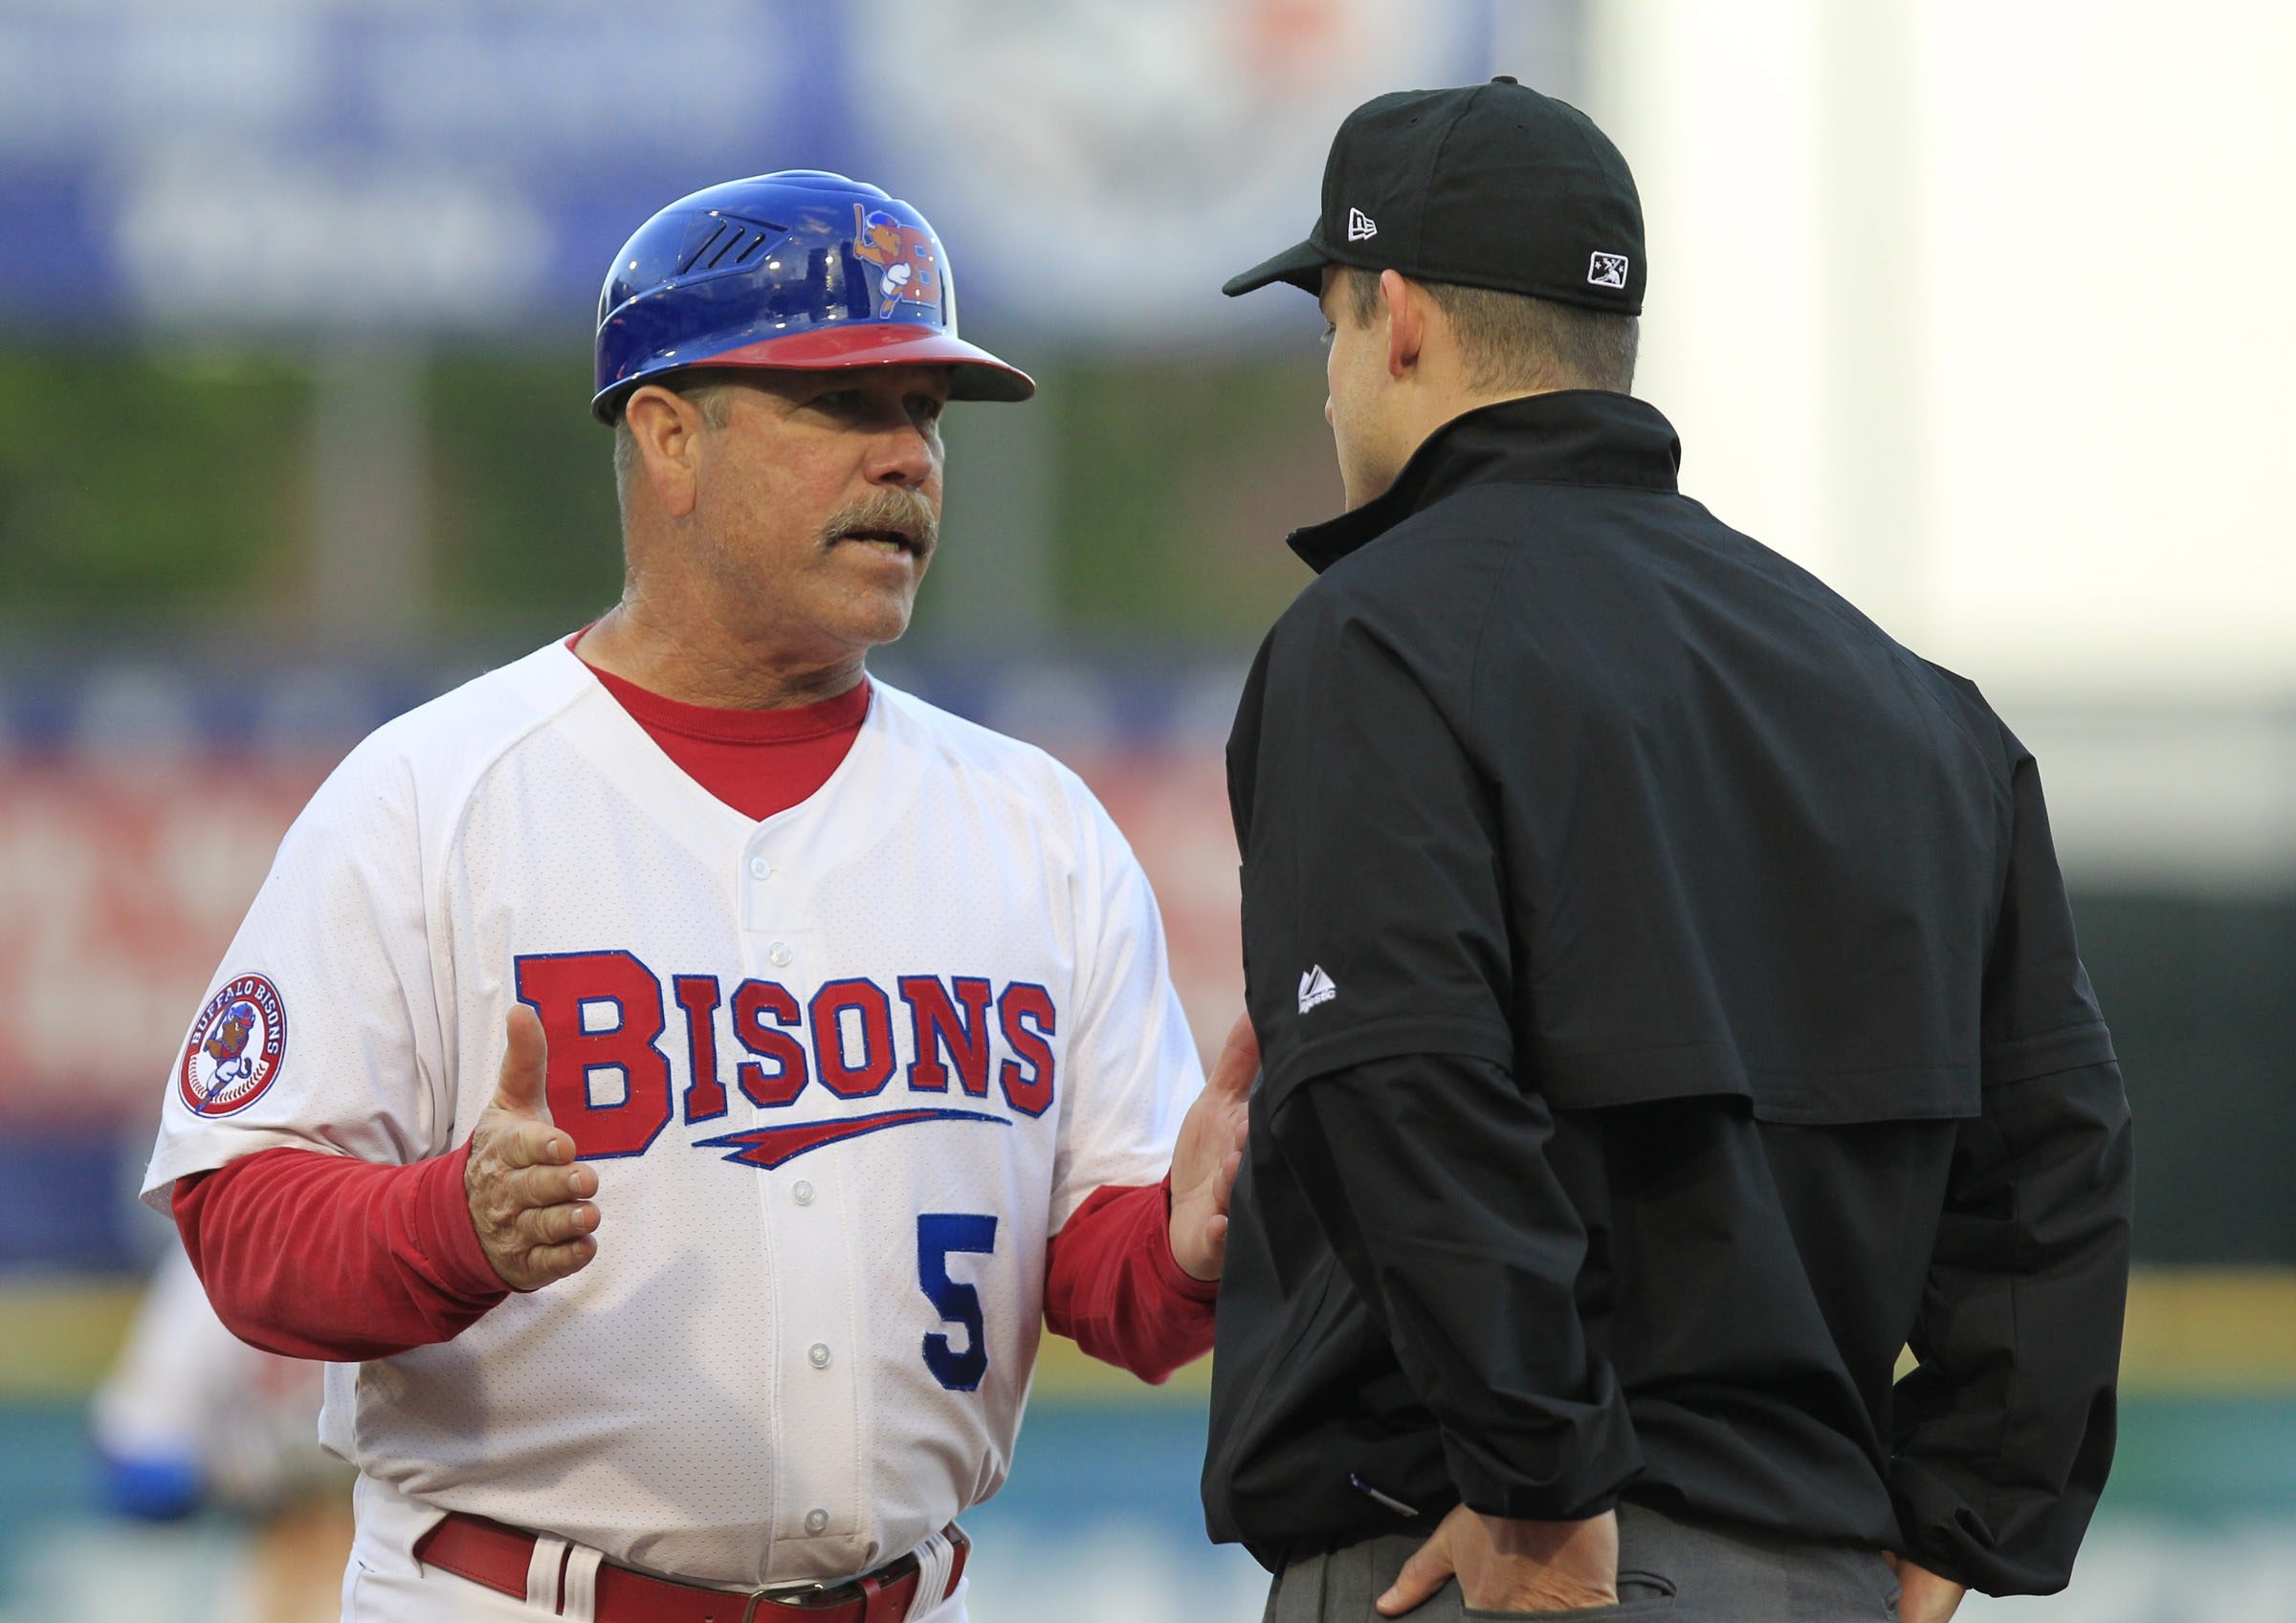 Bisons manager Gary Allenson is a no-nonsense baseball veteran who has kept the team in the playoff hunt despite 235 roster moves and a franchise-record 72 players who suited up for the Herd this season.